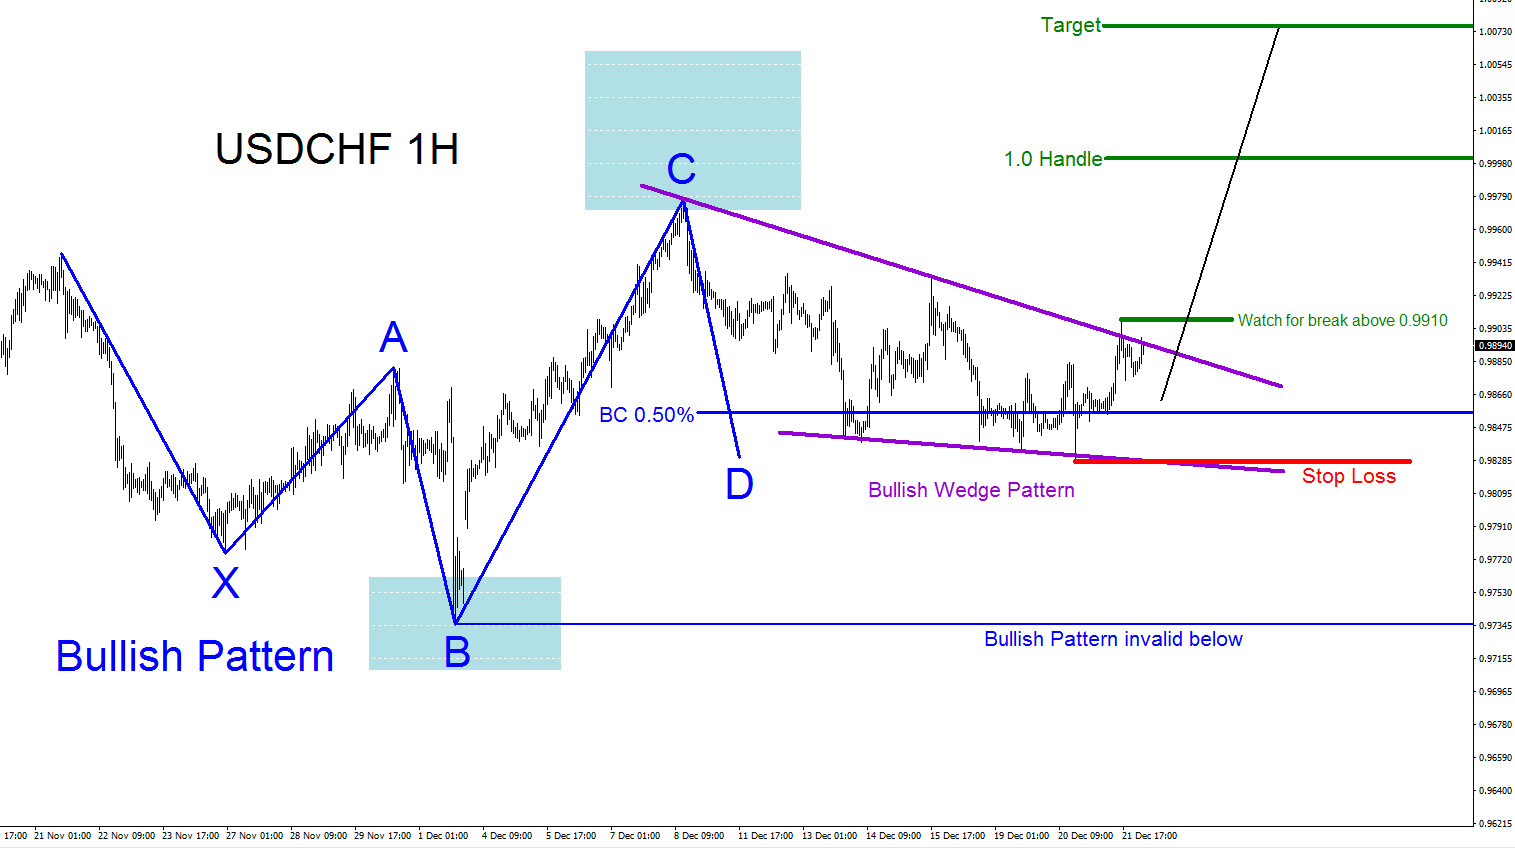 USDCHF : Possible Rally Higher?